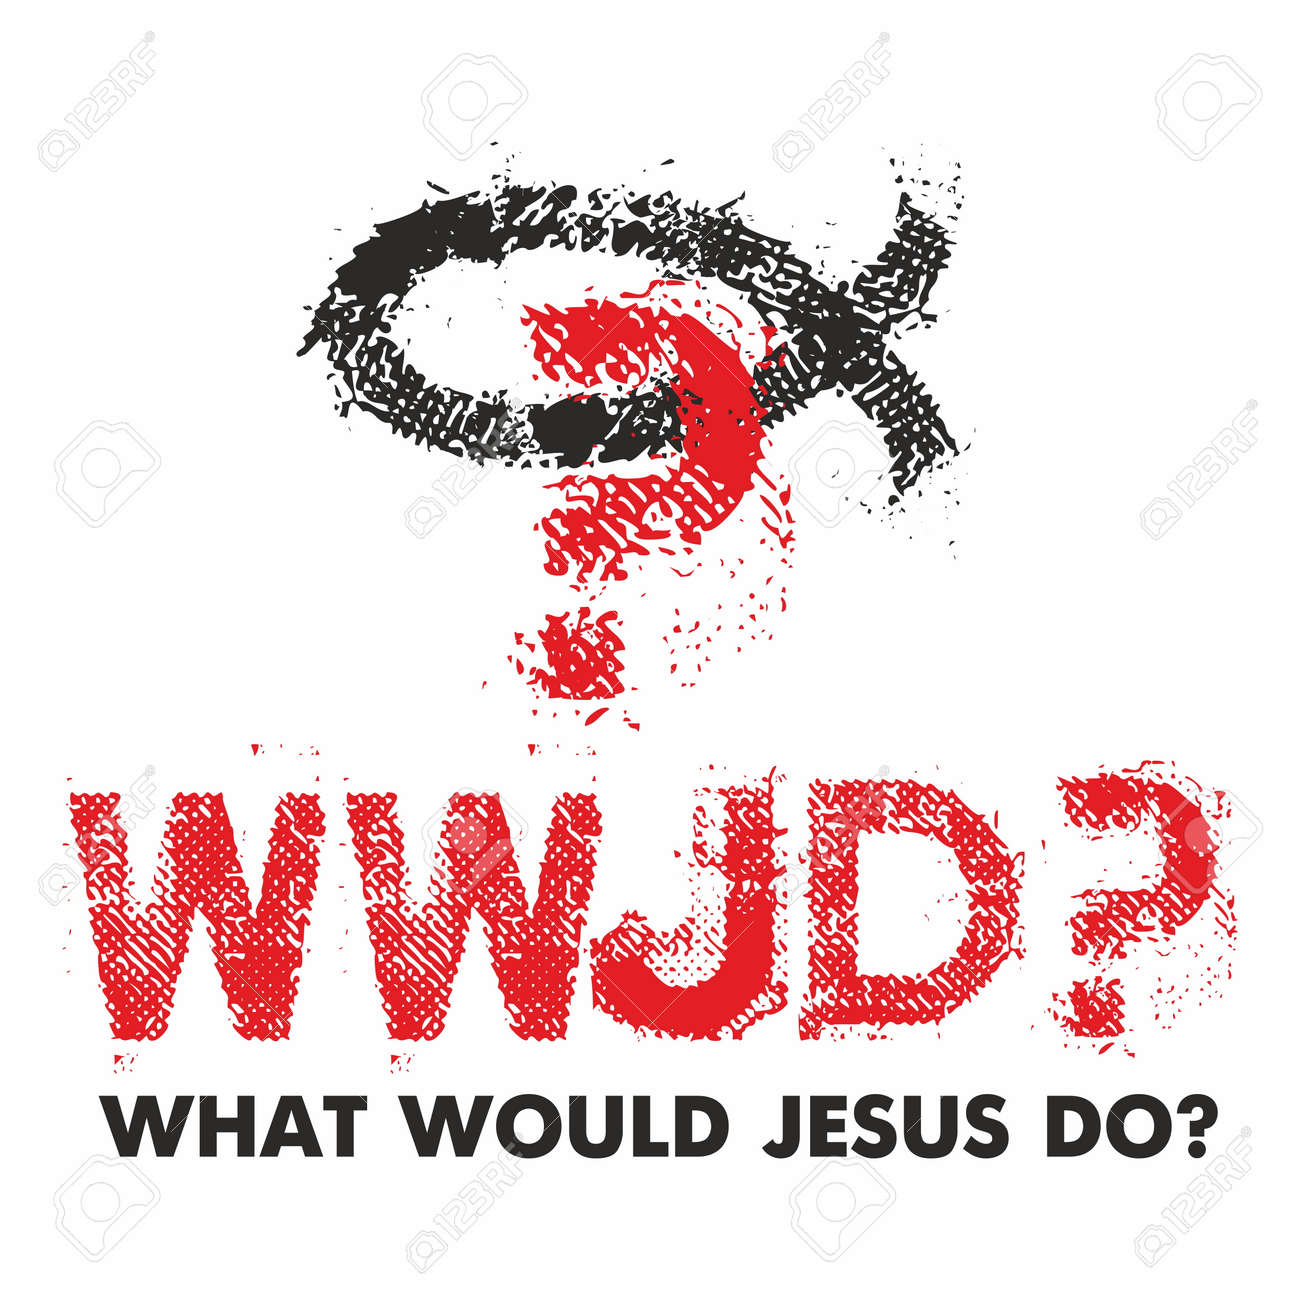 Image result for what would jesus do